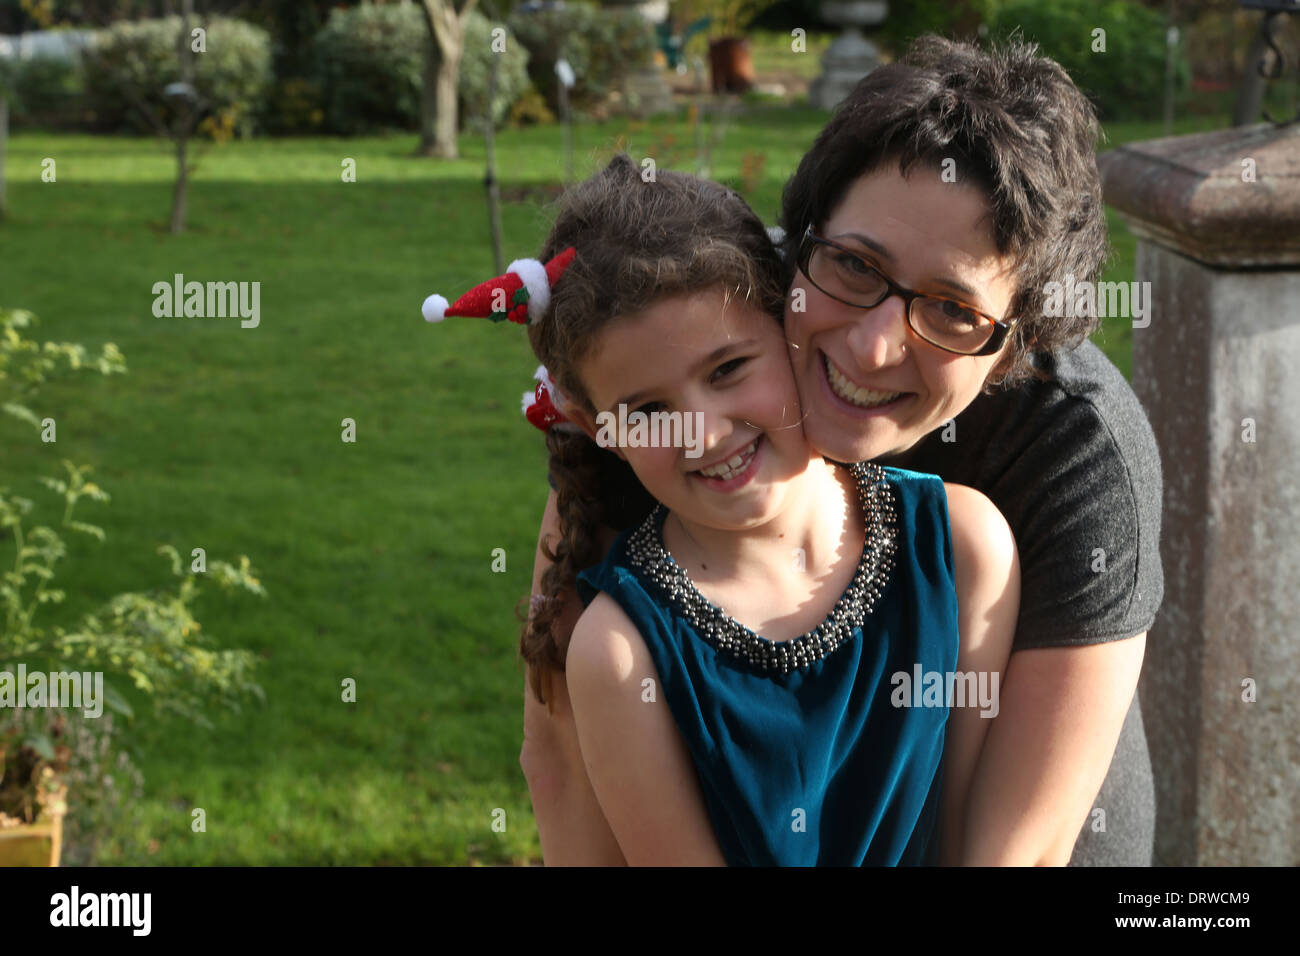 woman 39 with child aged 7 - Stock Image